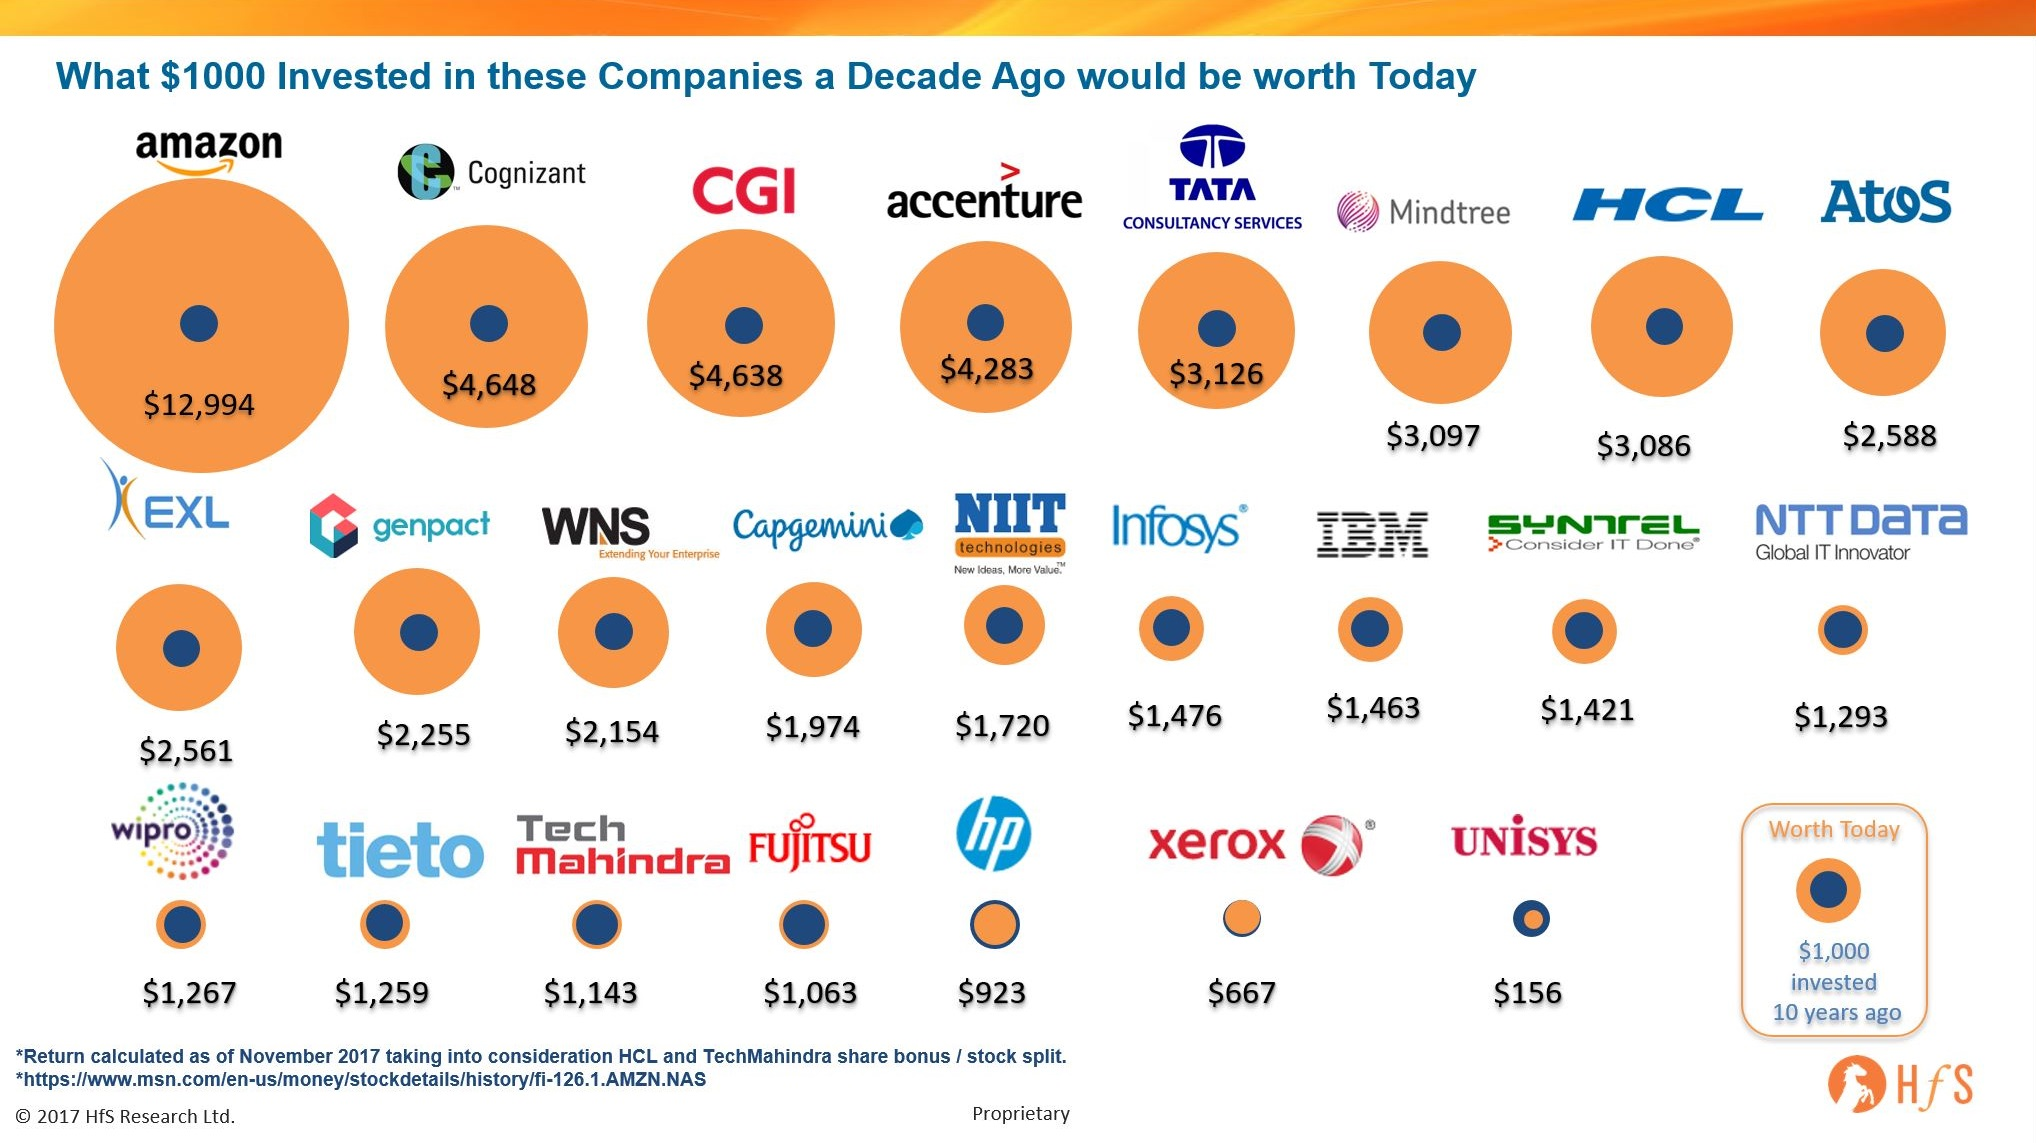 What $1000 invested in these firms ten years ago would be worth today